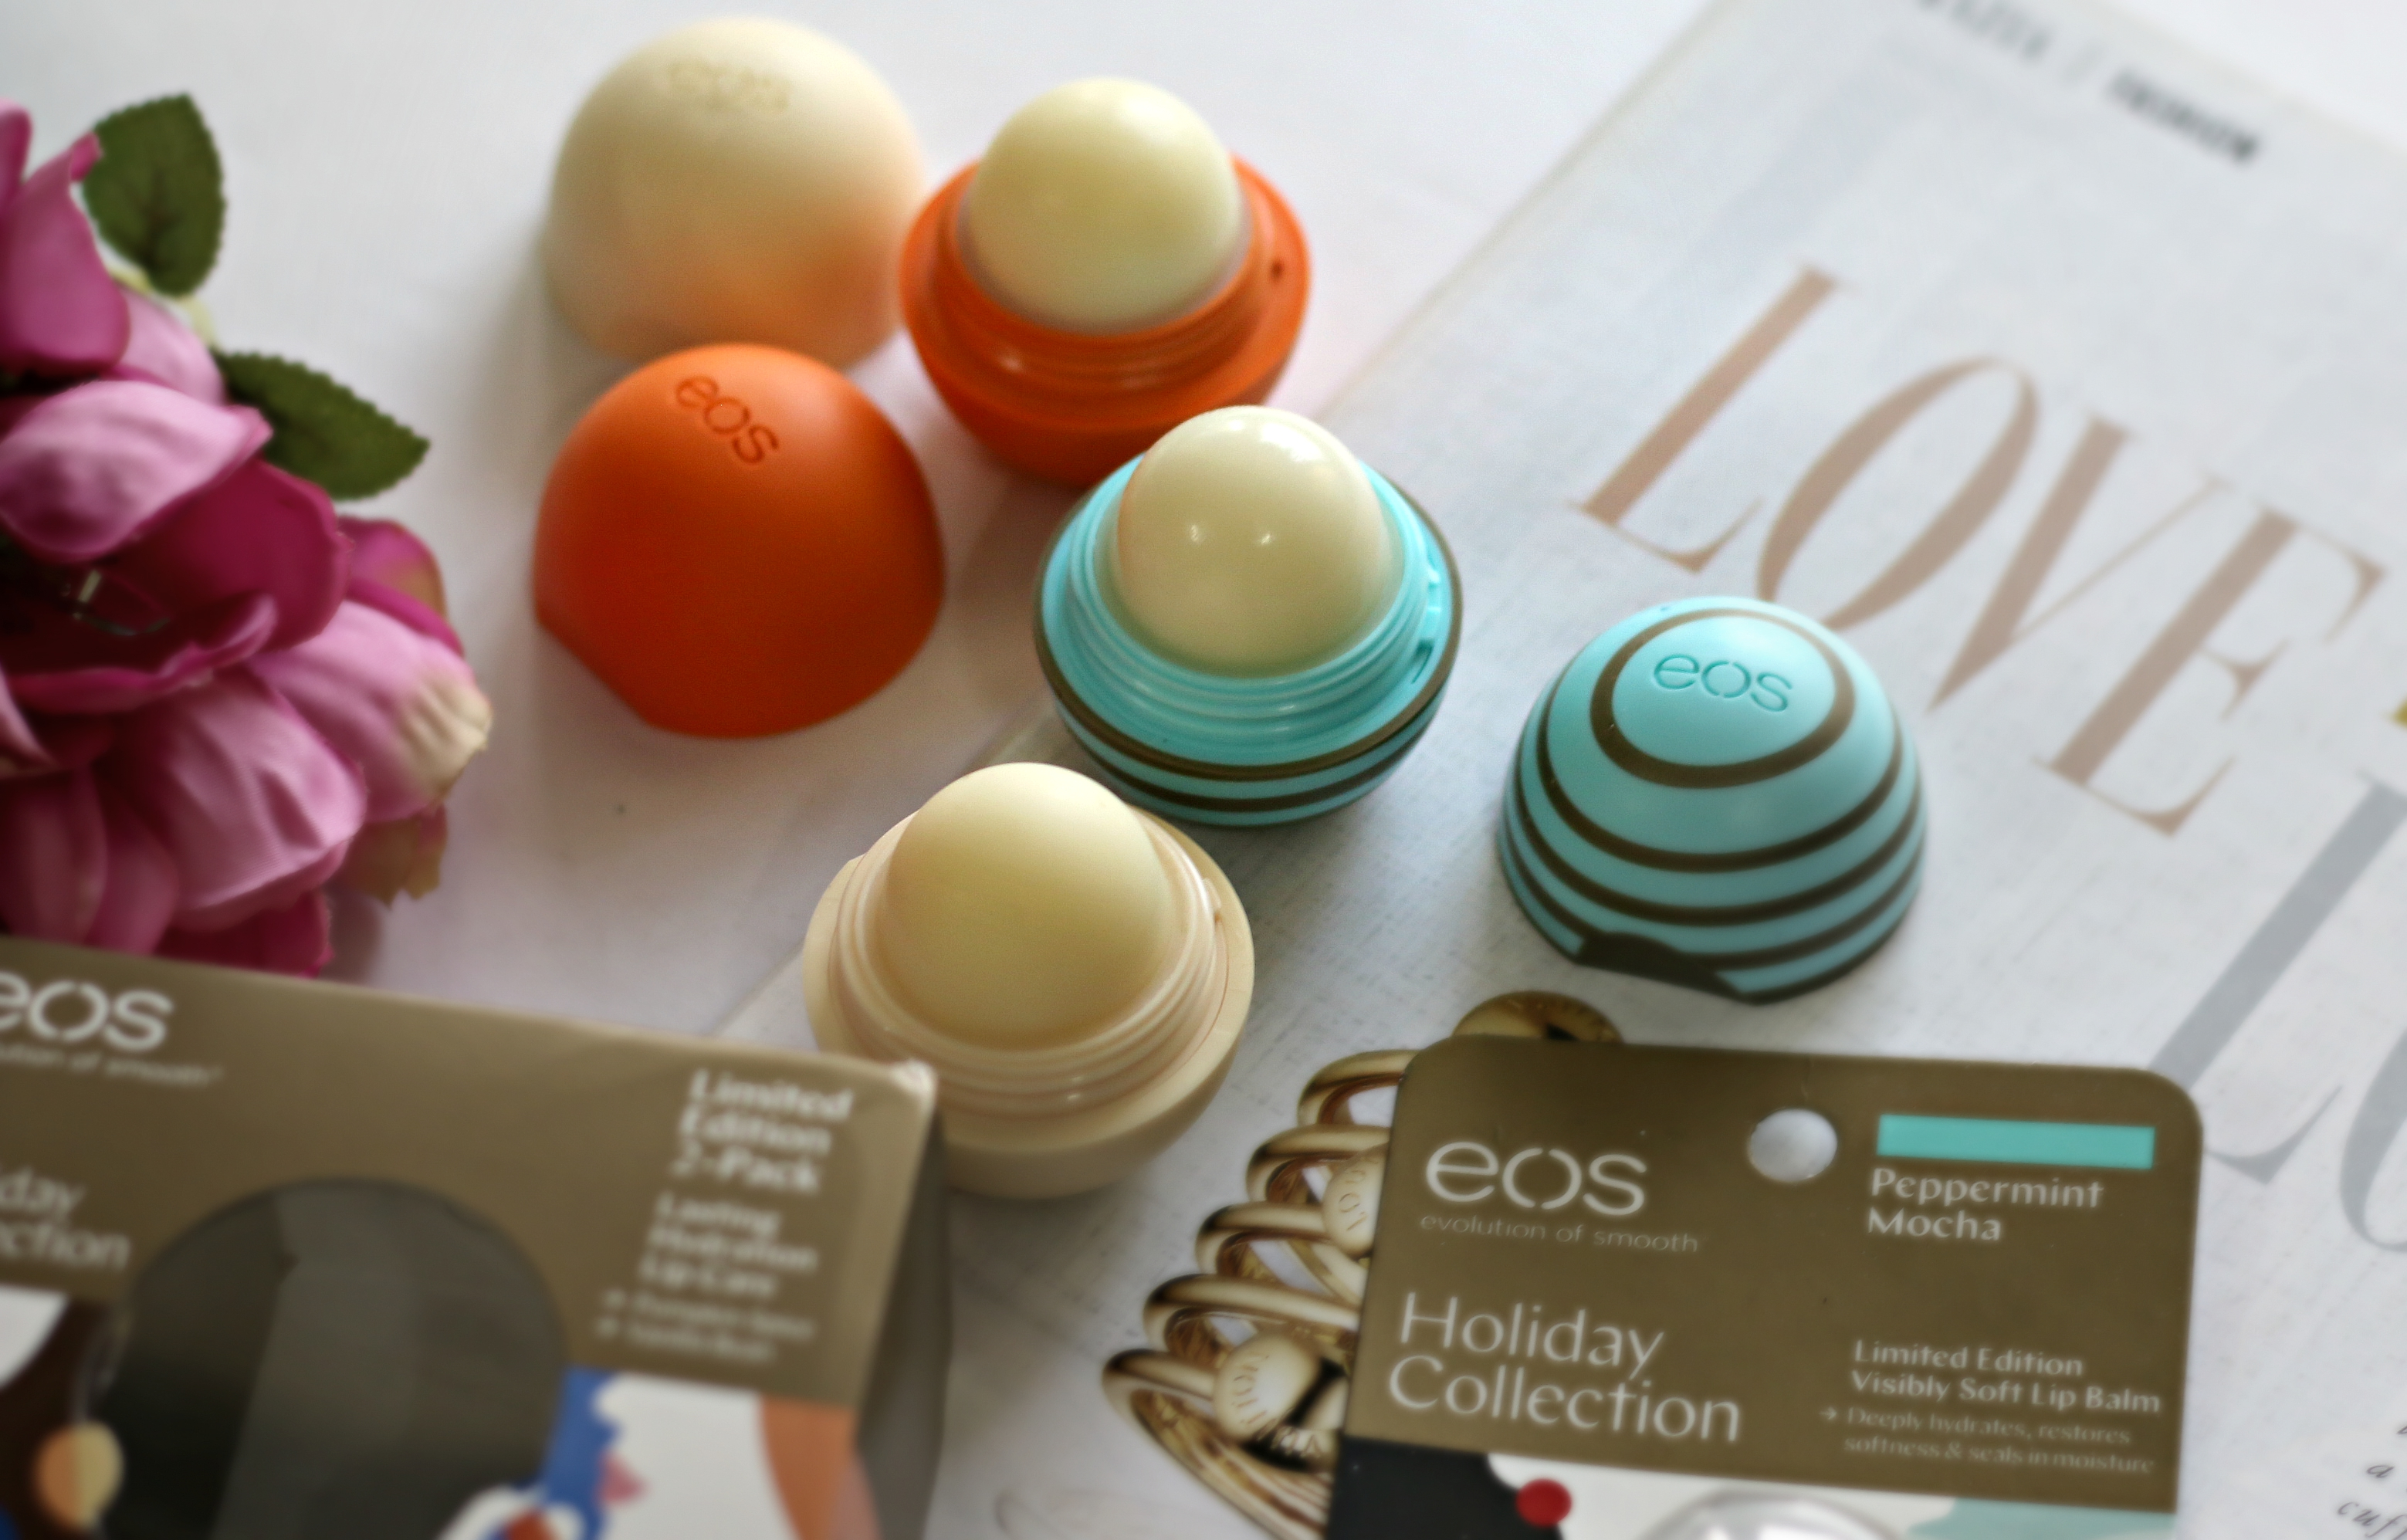 eos Evolution of Smooth – Holiday Collection Lip Balms